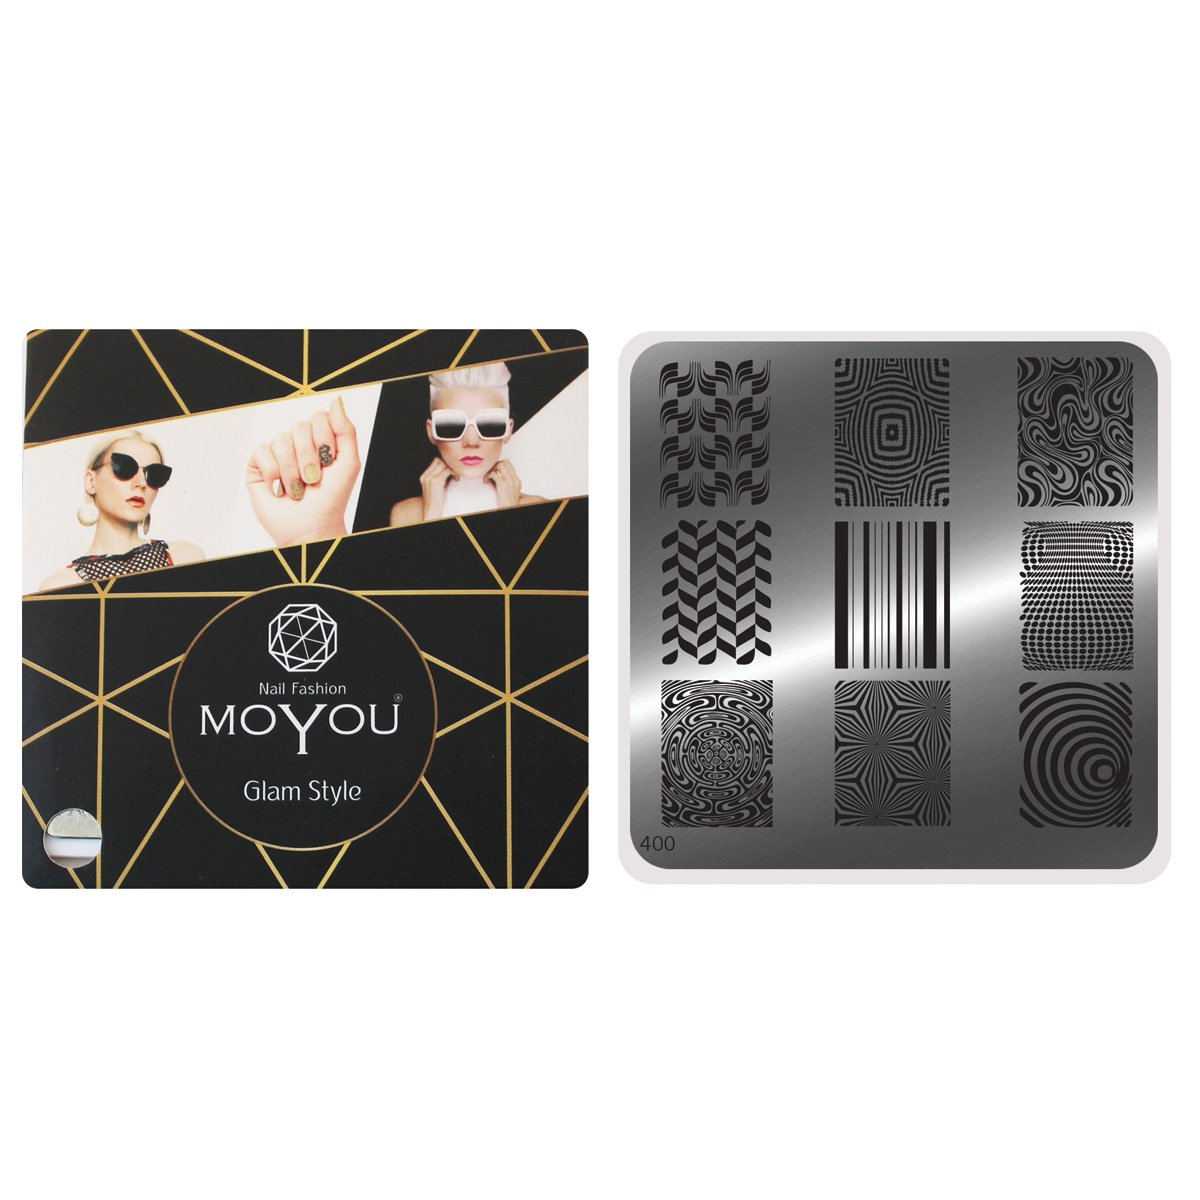 MoYou Nails Square Image Plate 400 Optical Illusion and Abstract Designs Nail Accessories Stamping Nail Art Easy to Use OMG Marketing Ltd